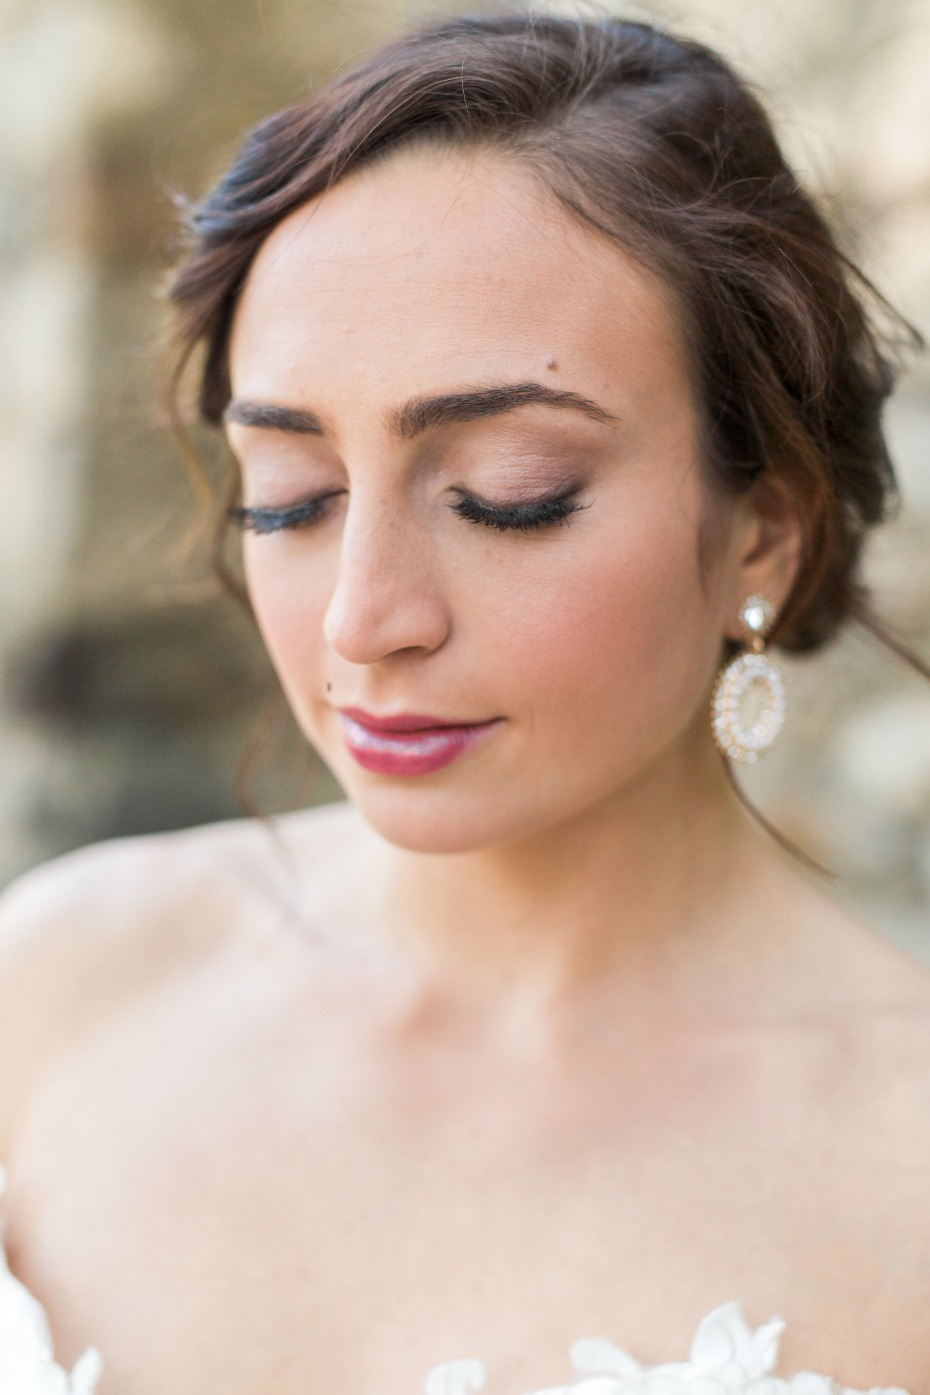 Soft and elegant makeup for the bride